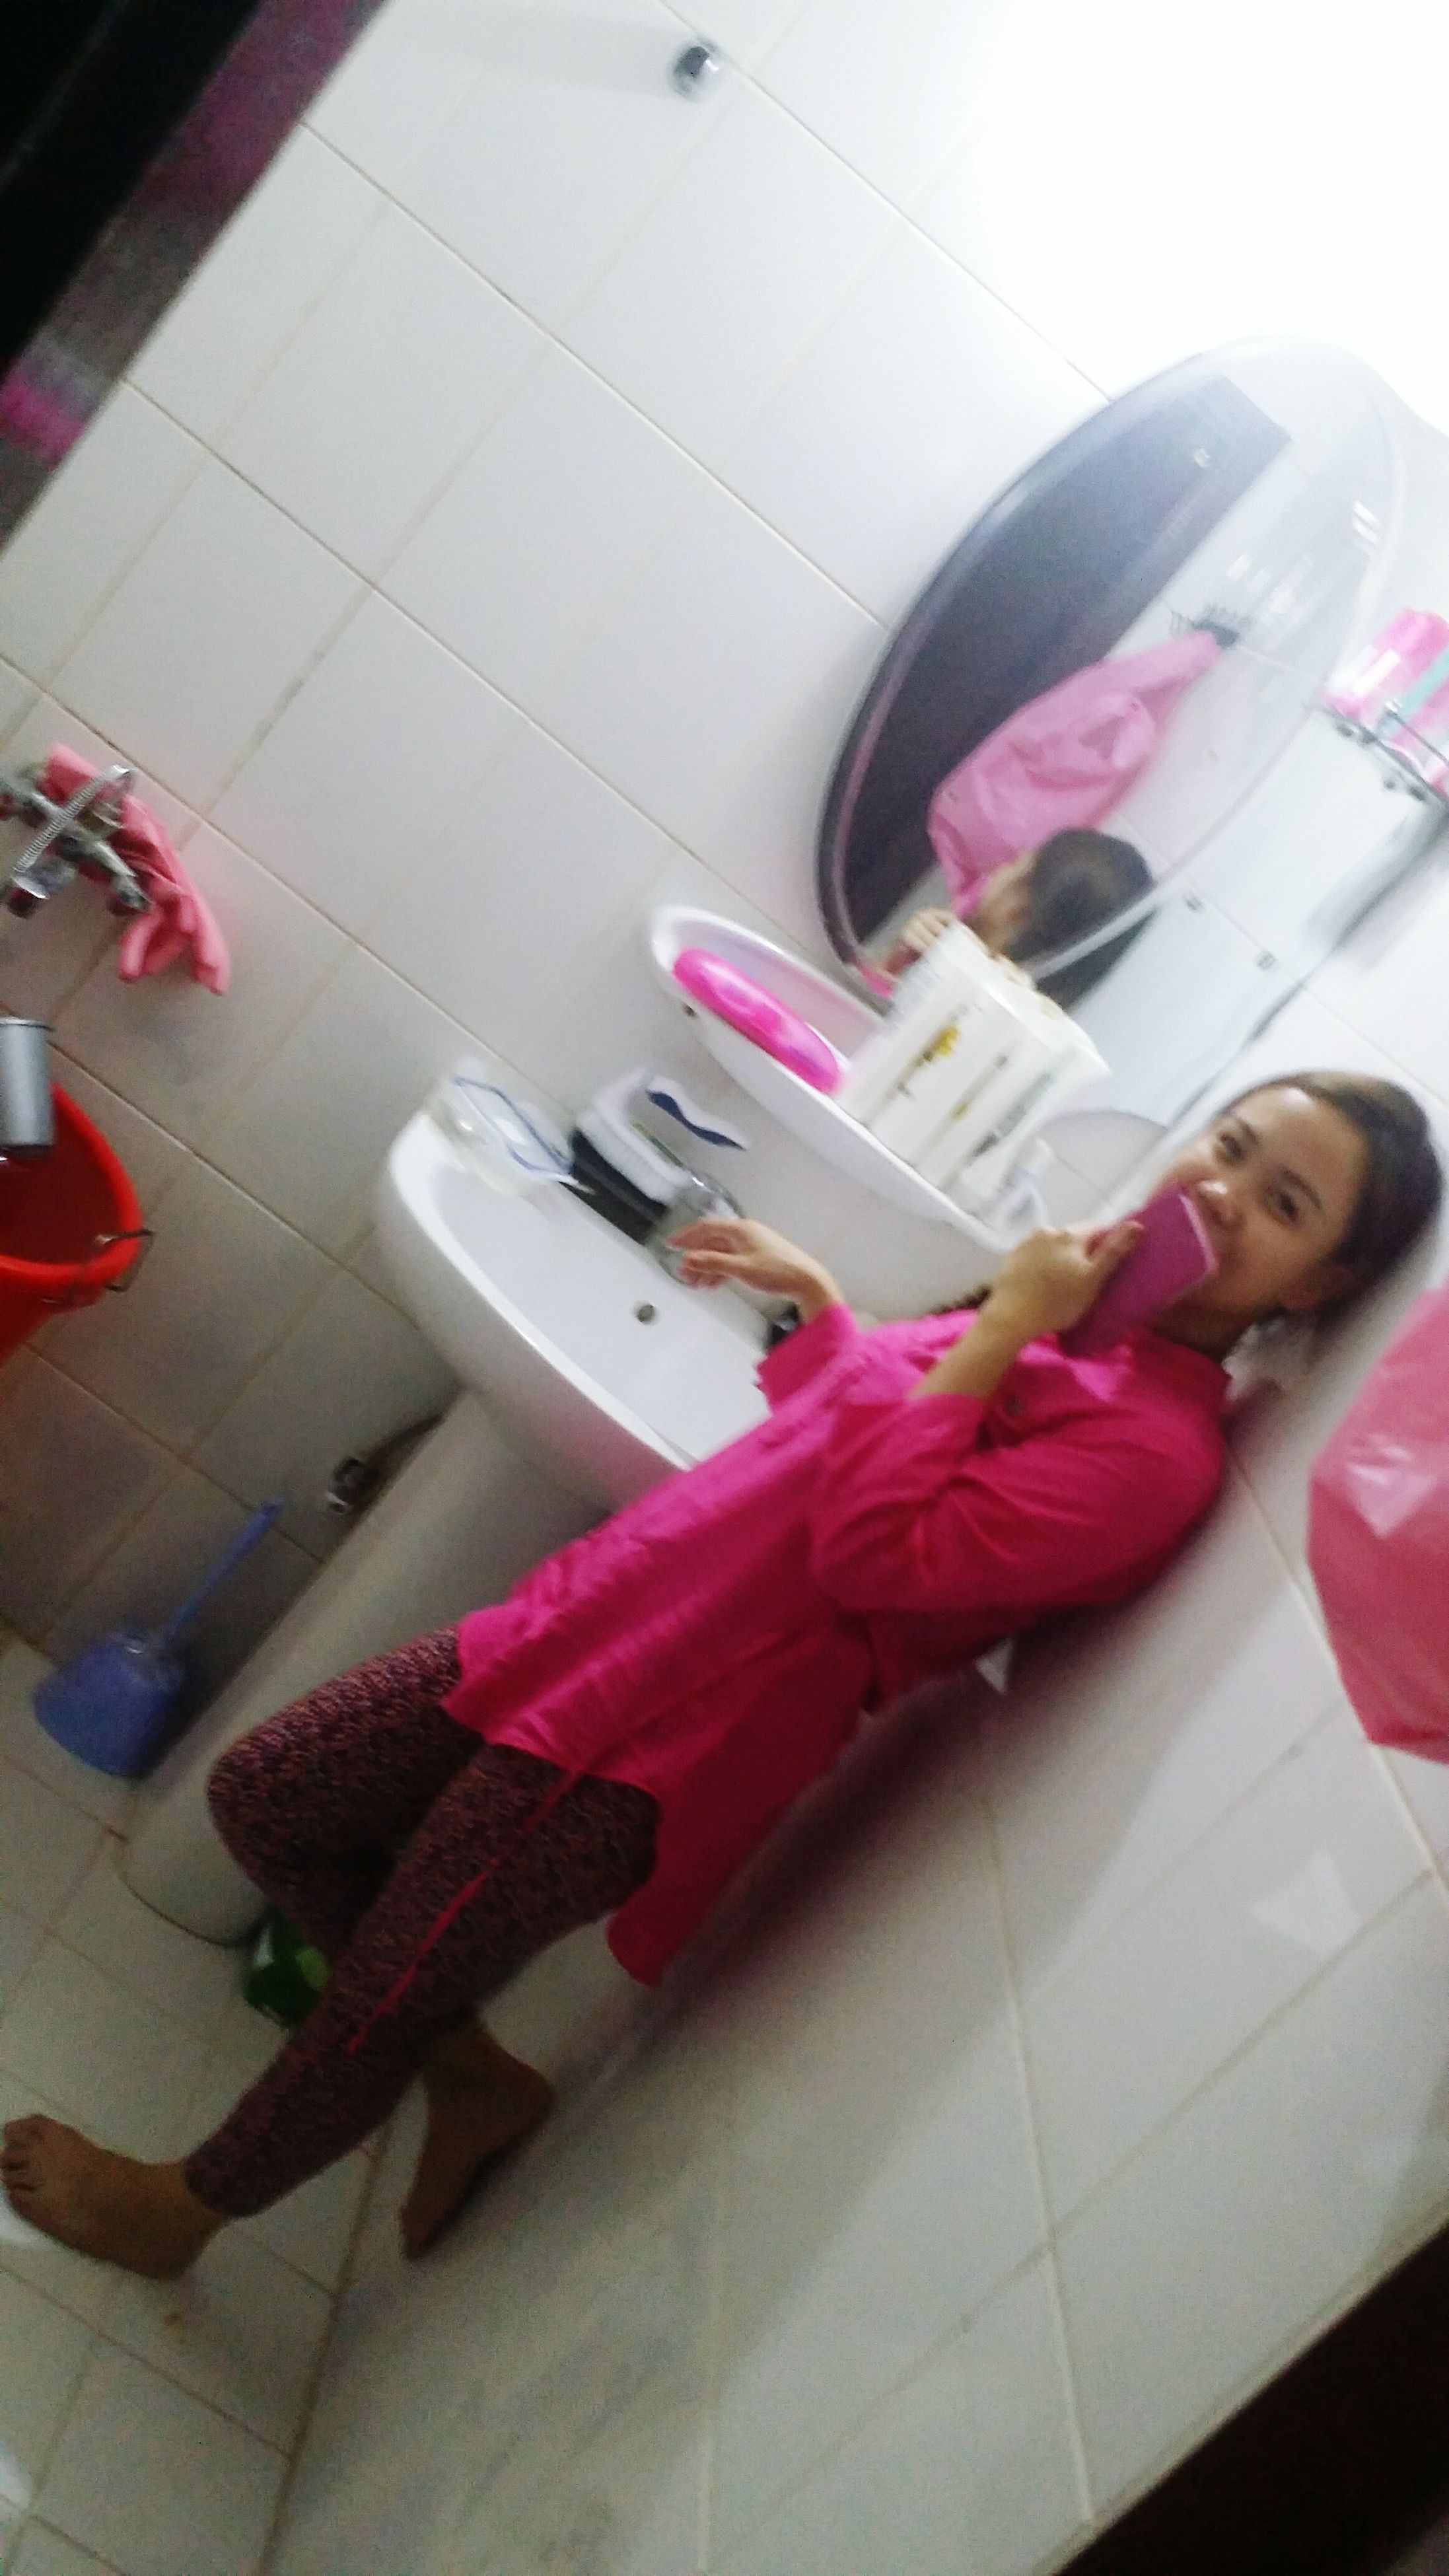 indoors, flooring, floor, pink color, multi colored, domestic life